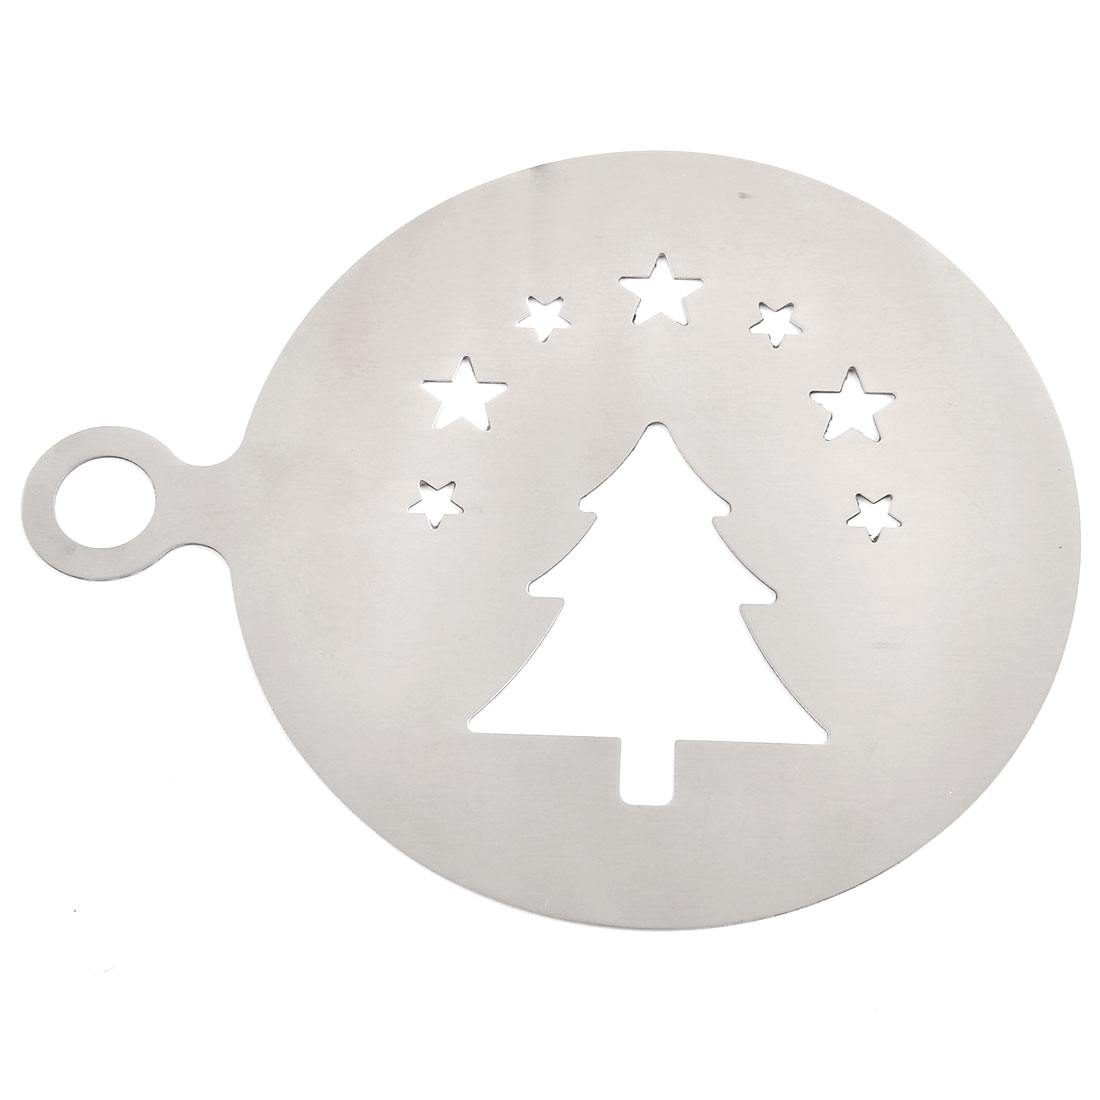 Home Kitchen Christmas Tree Design Baking Stencil Coffee Decorating Tool Mold